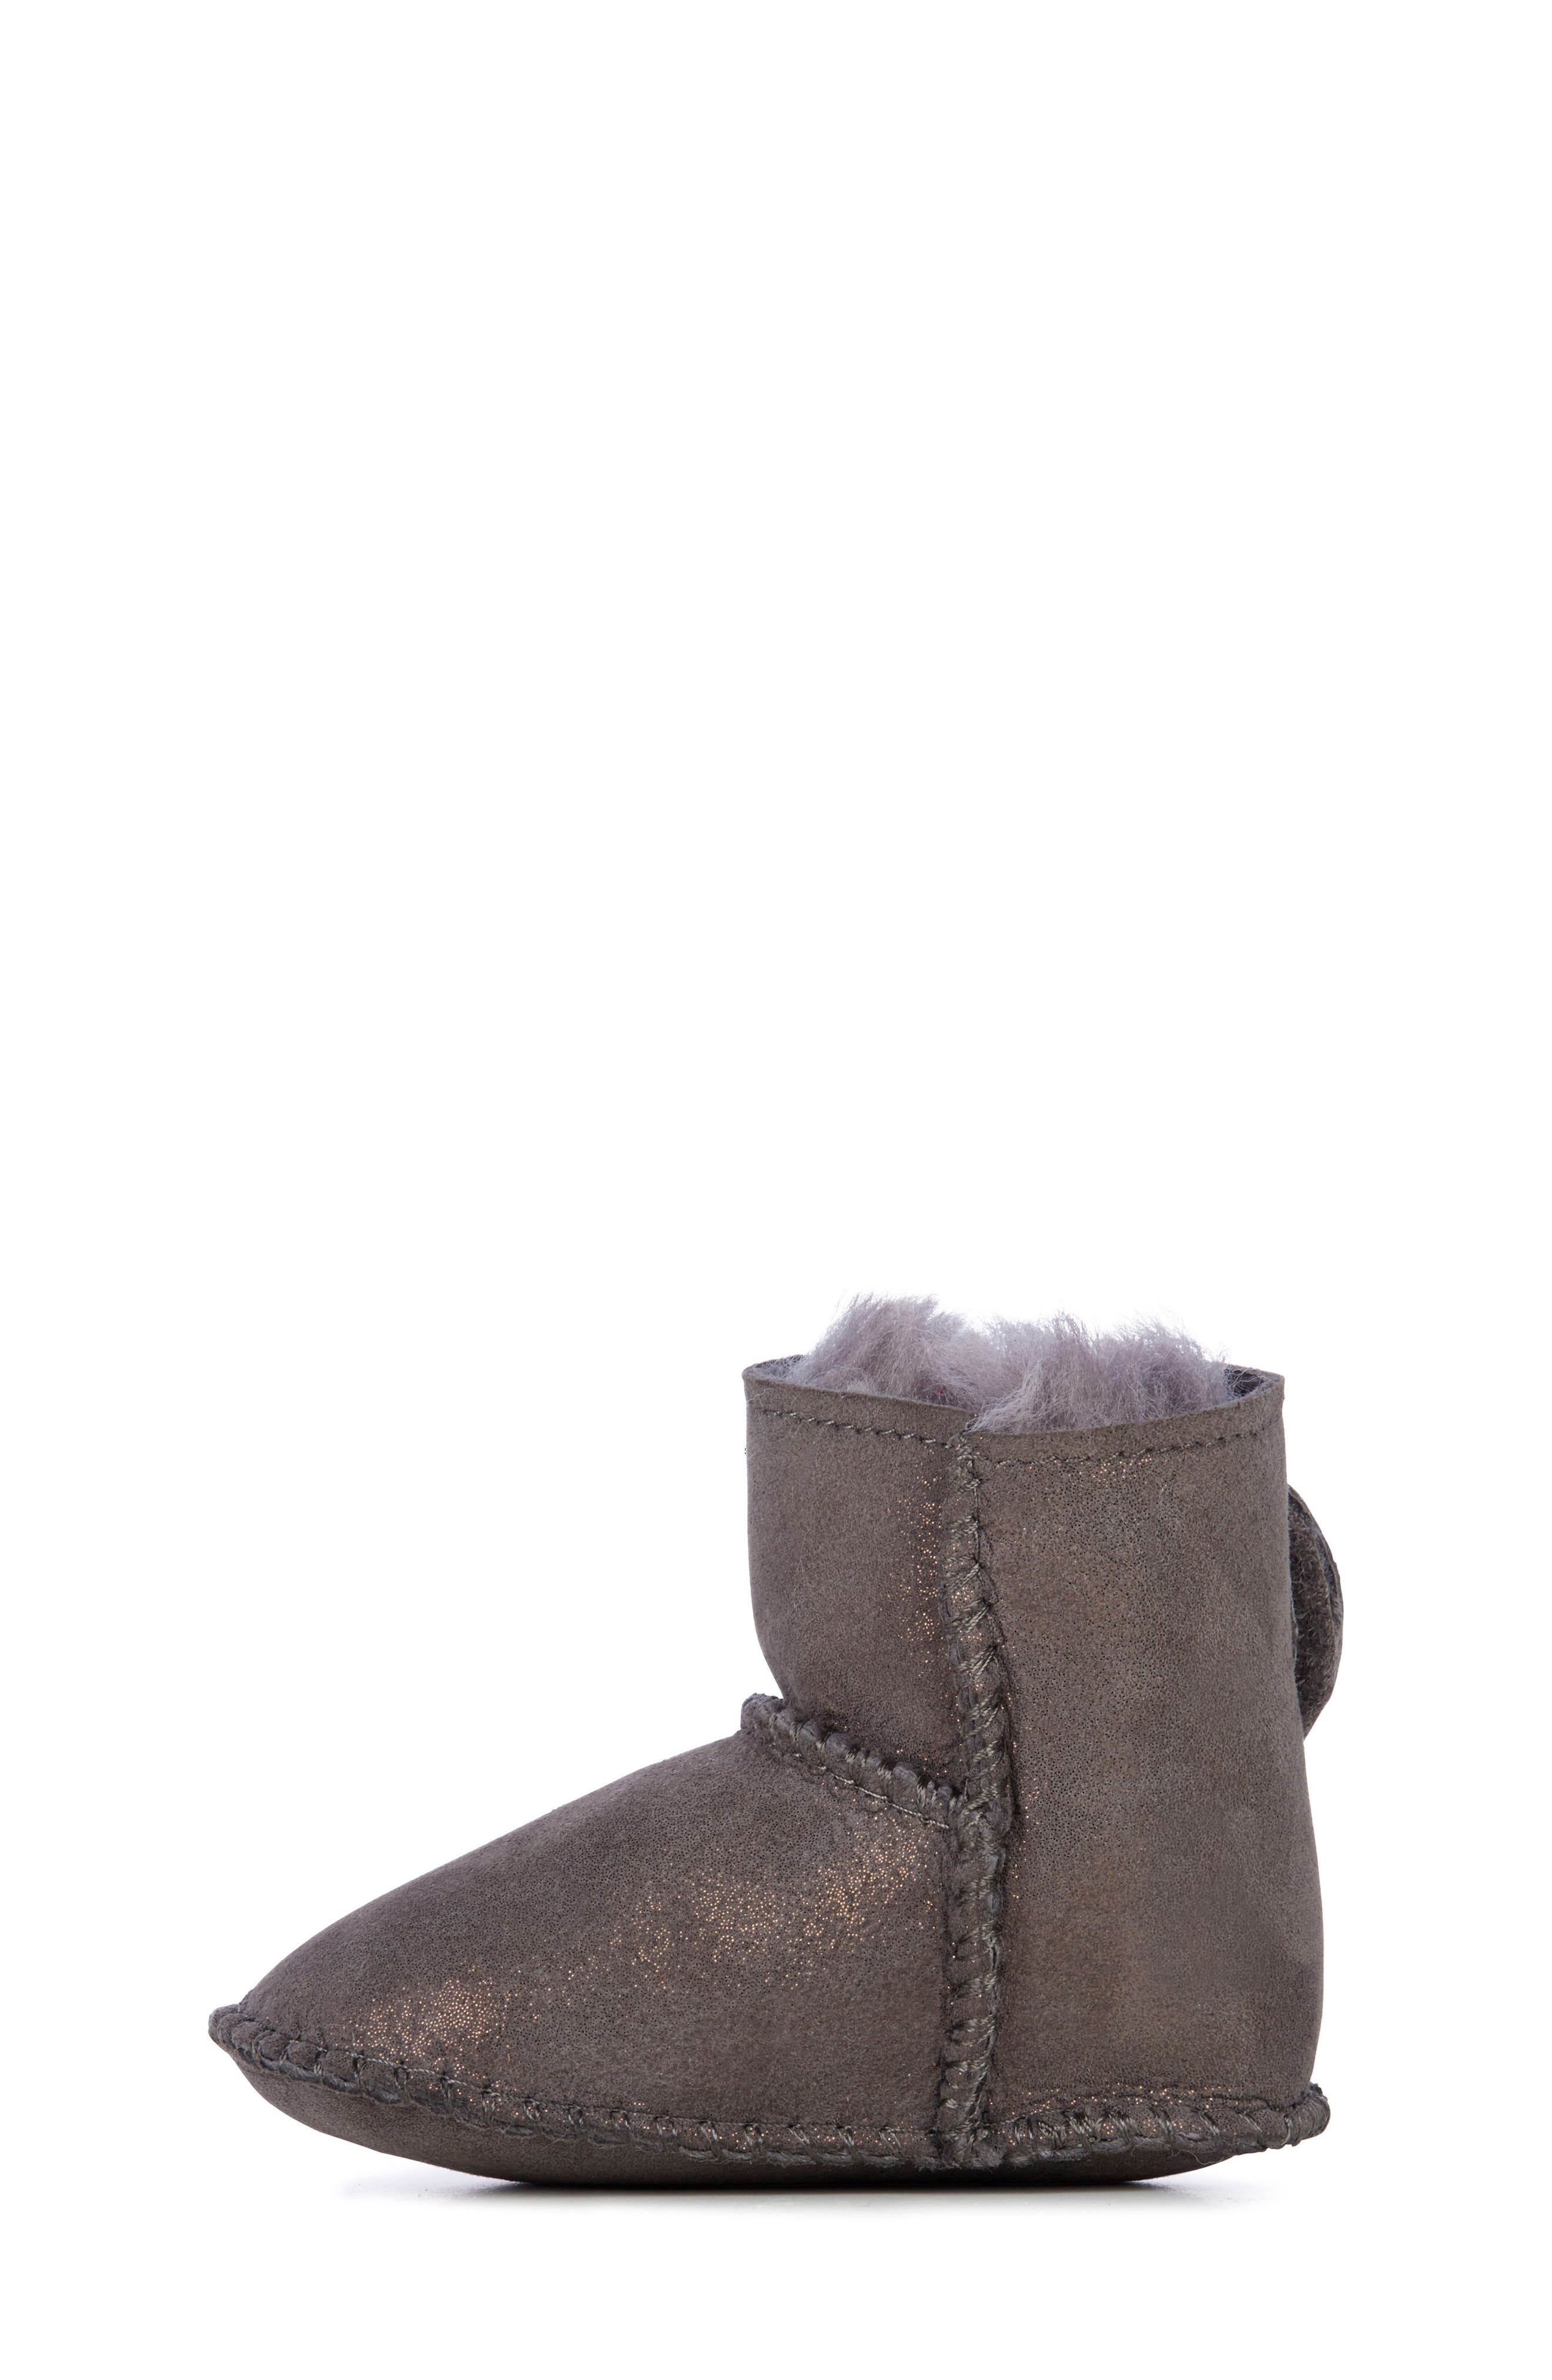 Water Resistant Metallic Bootie,                             Alternate thumbnail 8, color,                             CHARCOAL